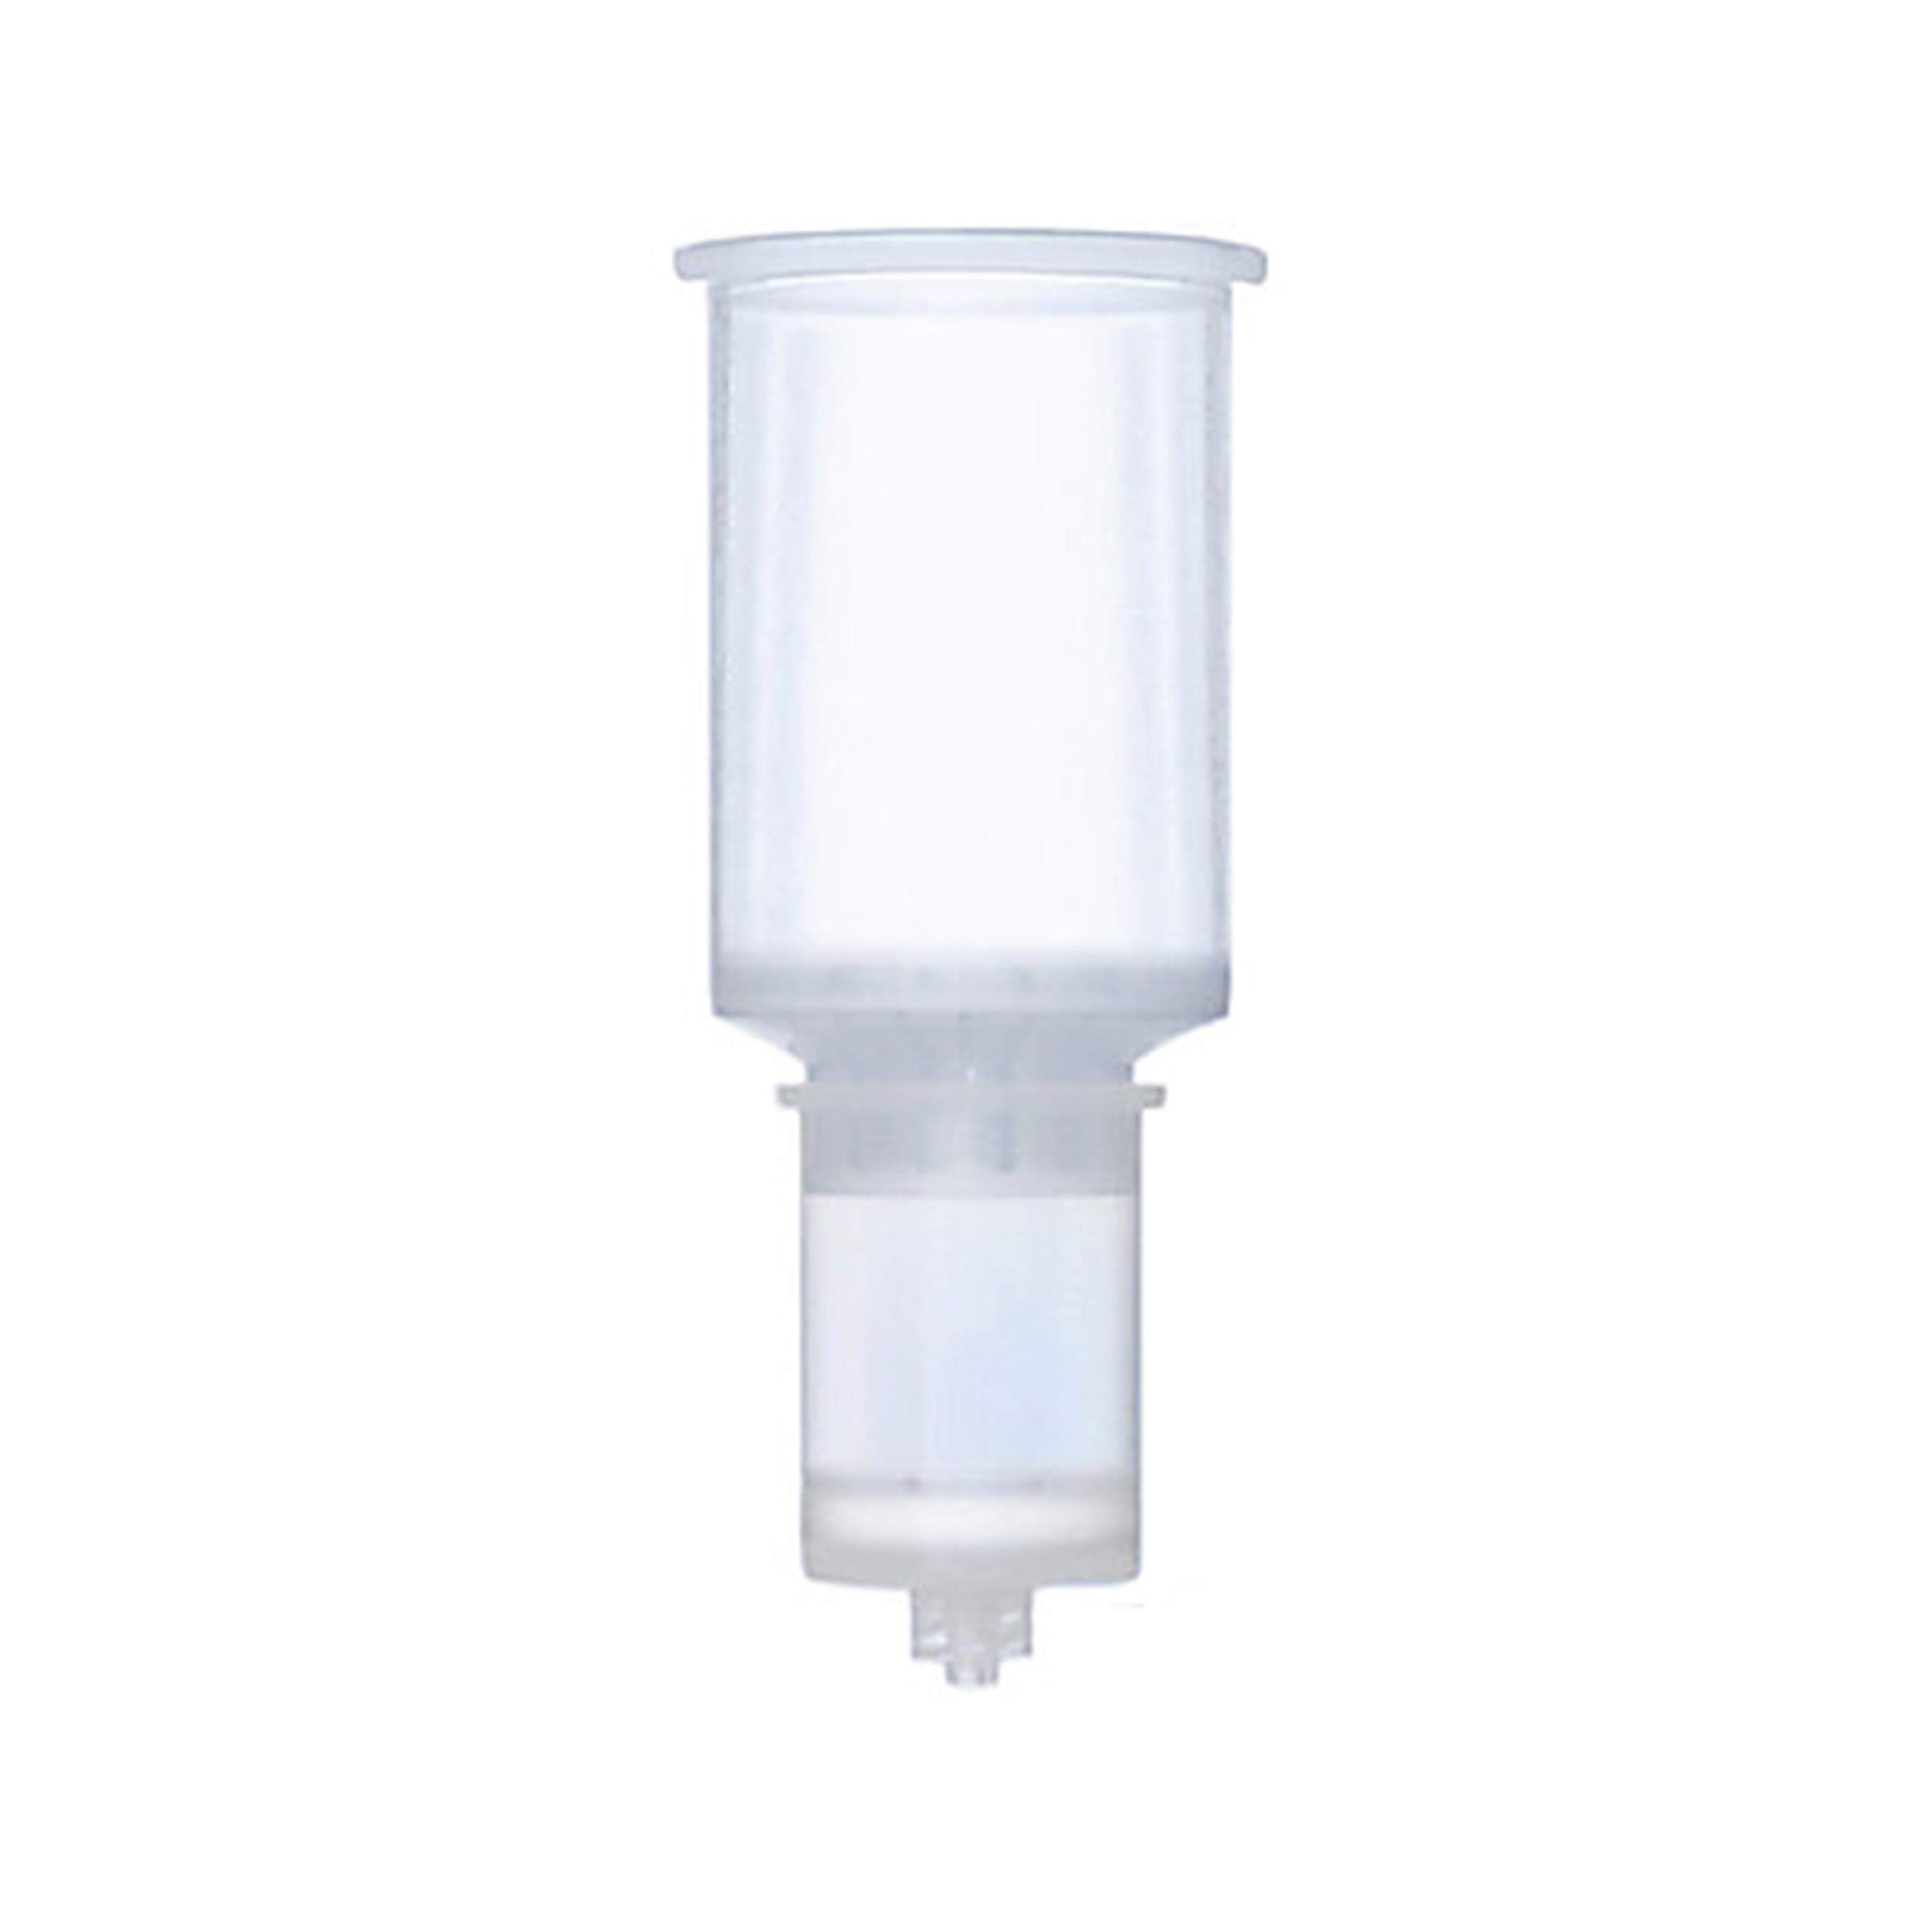 Zymo Research C1017-10 Zymo-Spin VI Column with Zymo-Maxi Filter (Pack of 10)